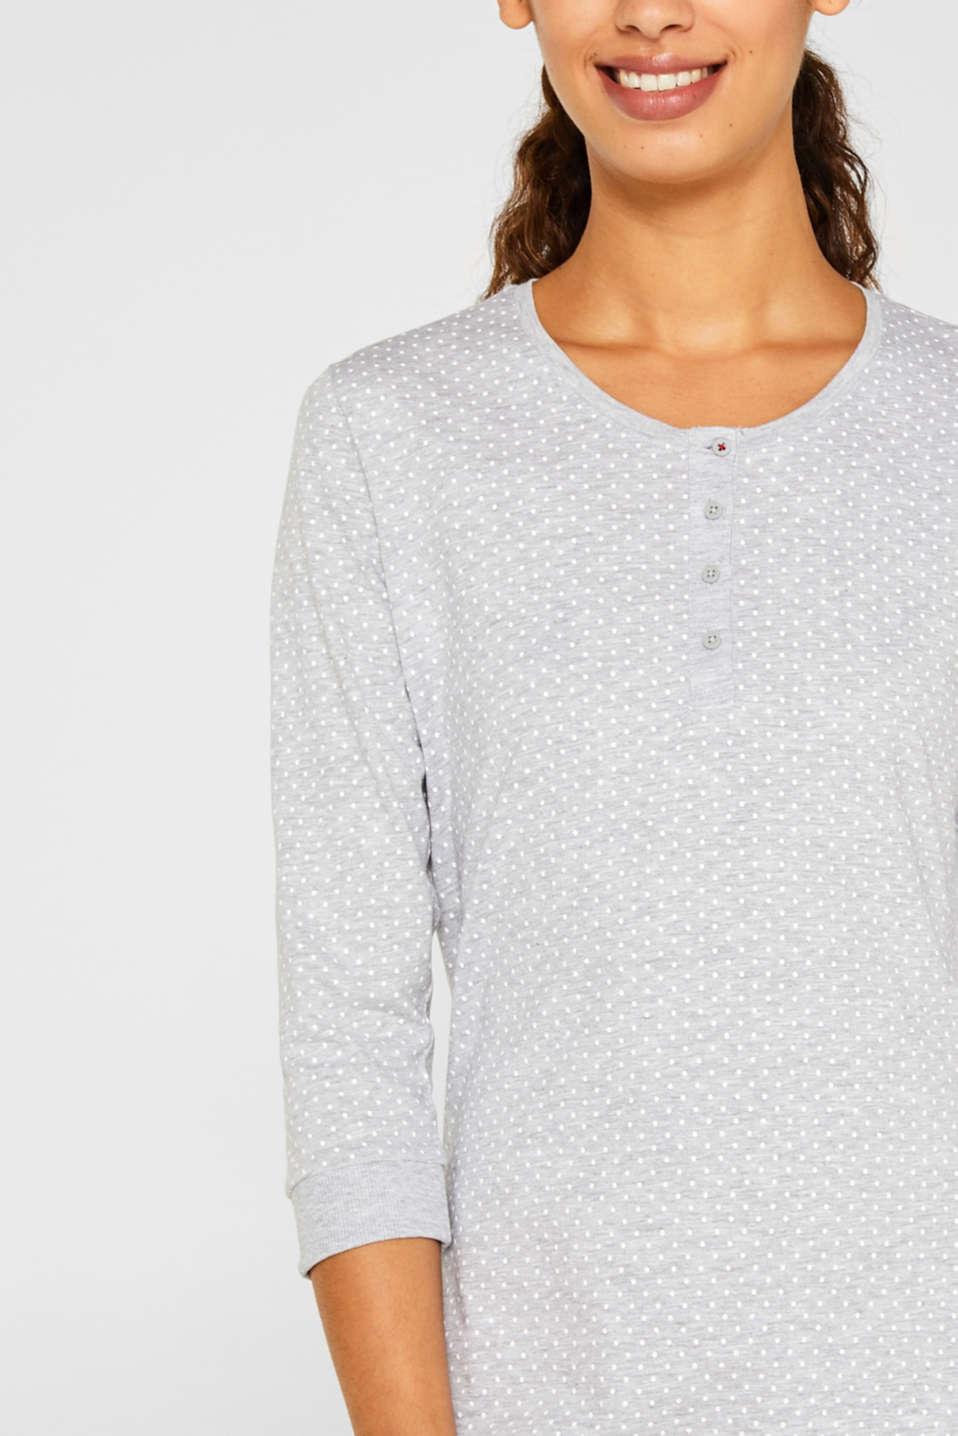 MODERN COTTON nightshirt, LIGHT GREY, detail image number 3